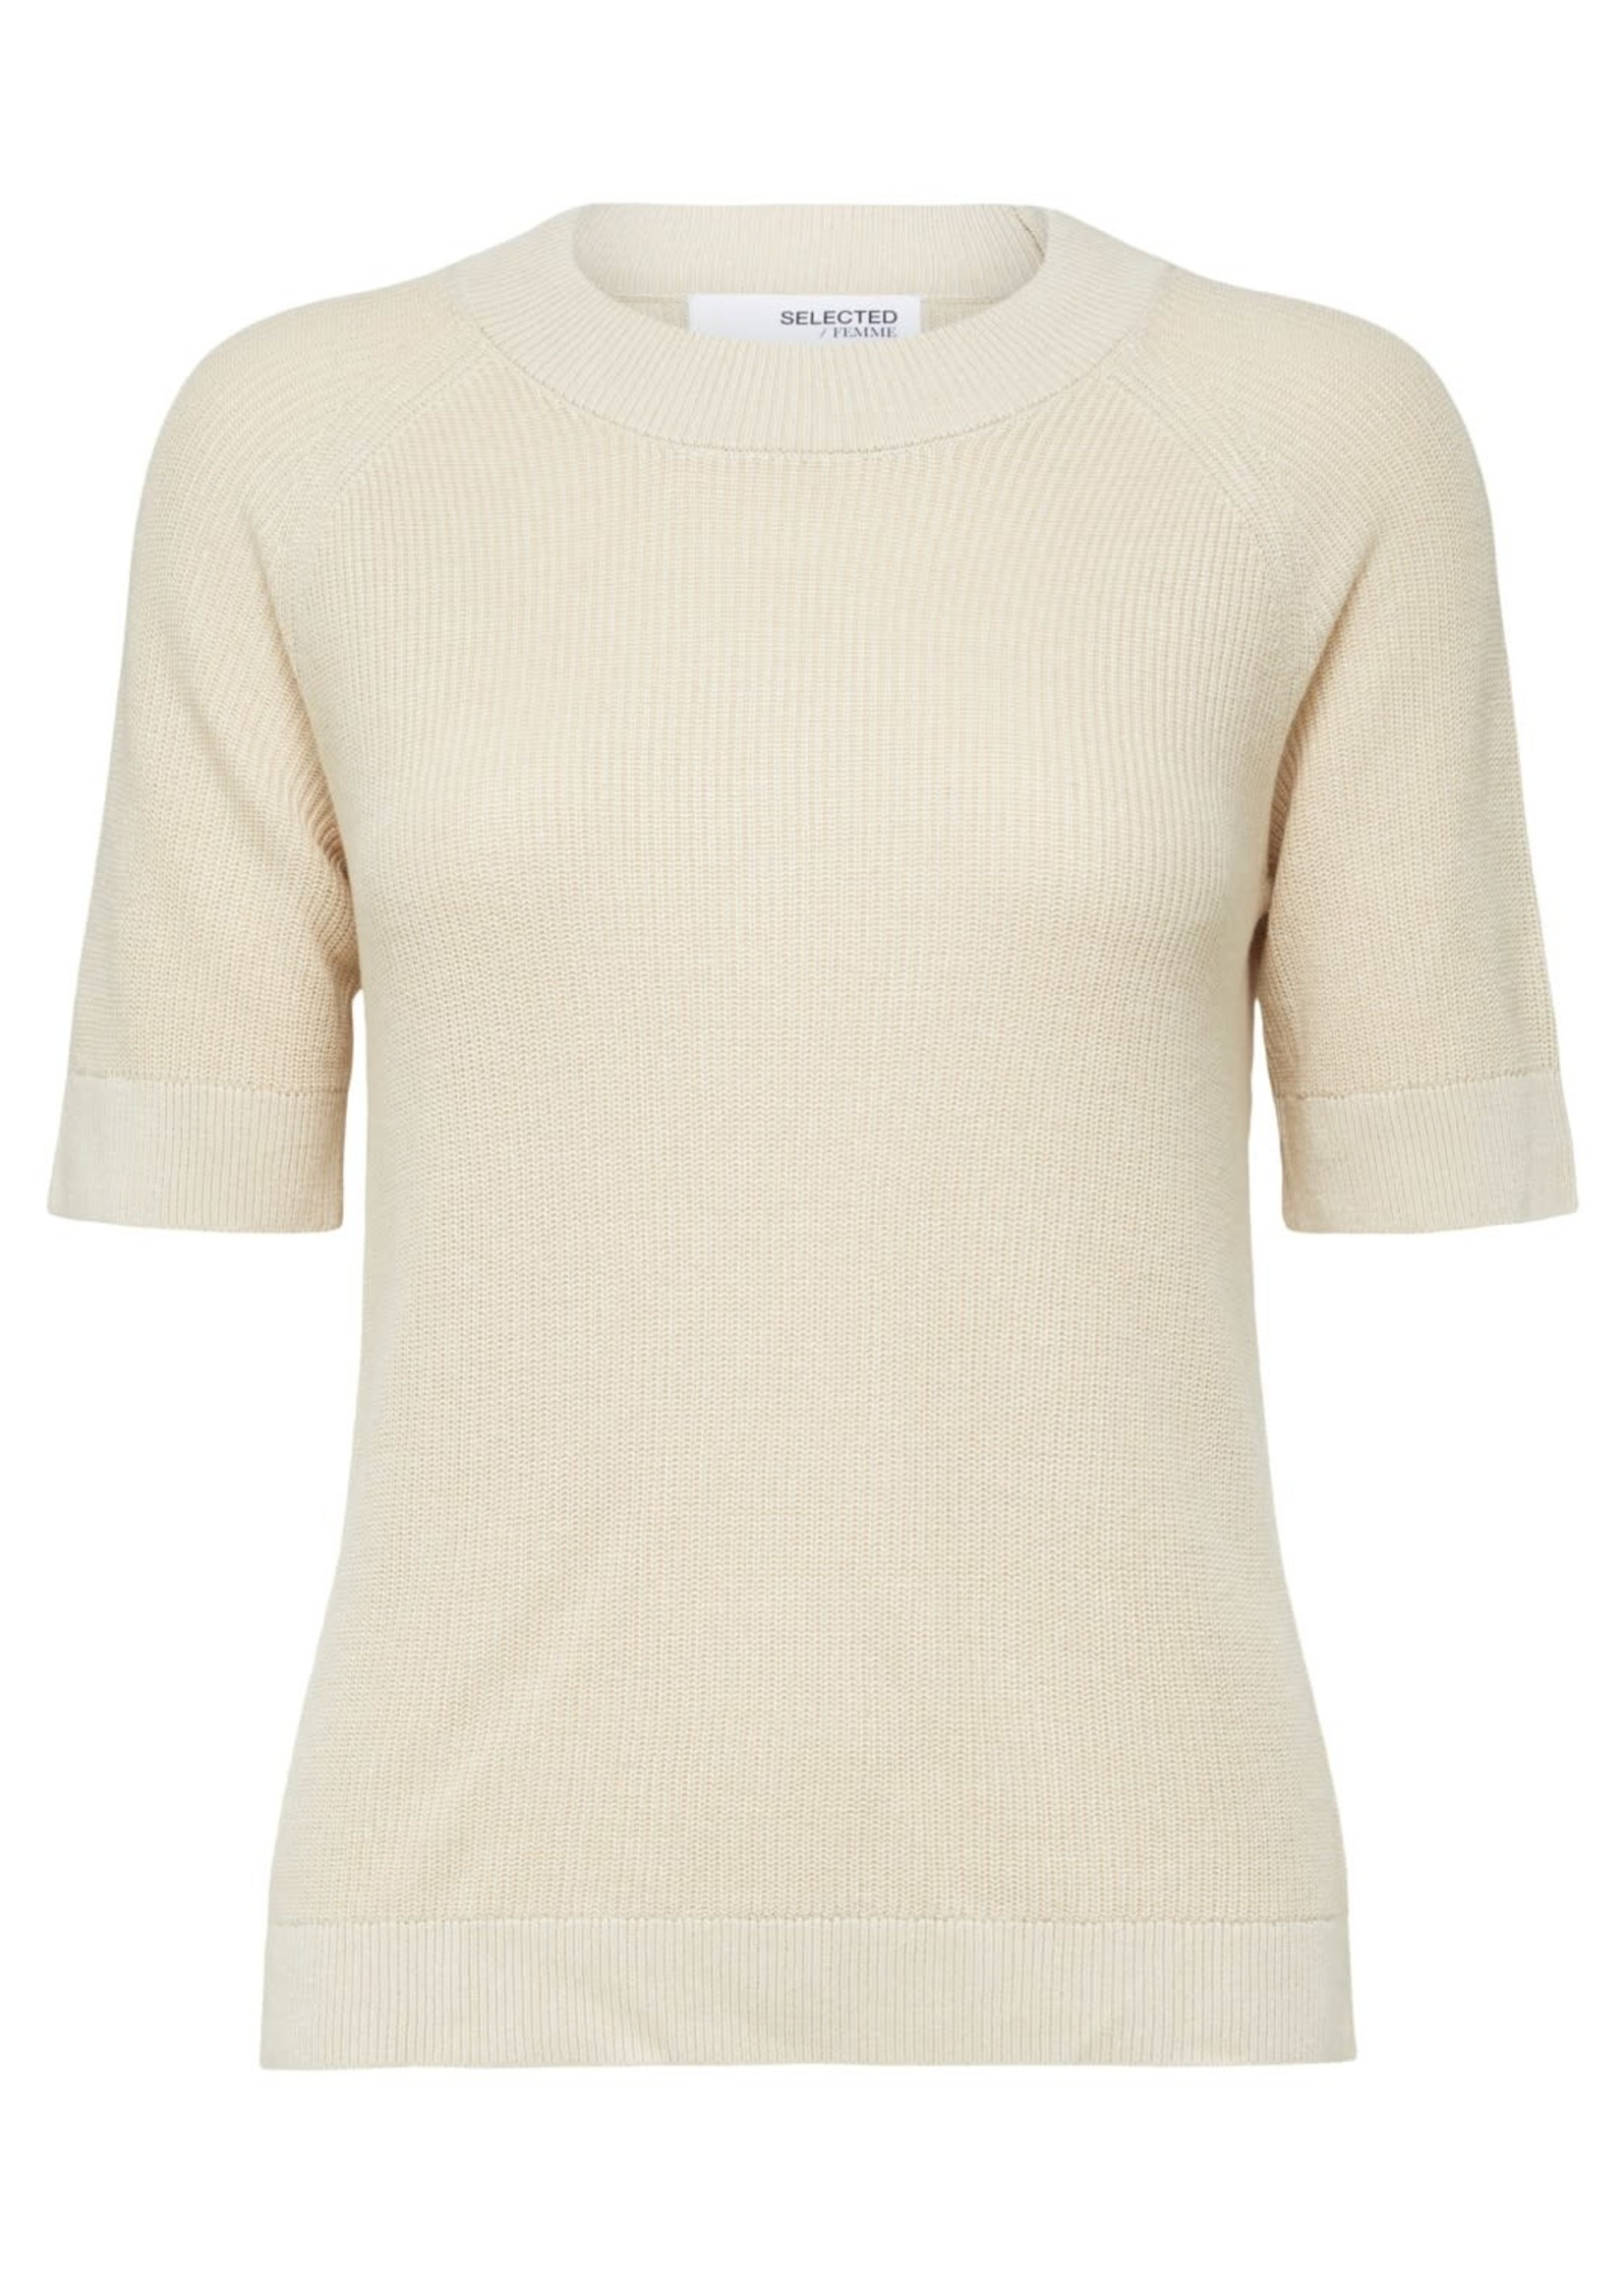 Selected Femme Elina ss knit top